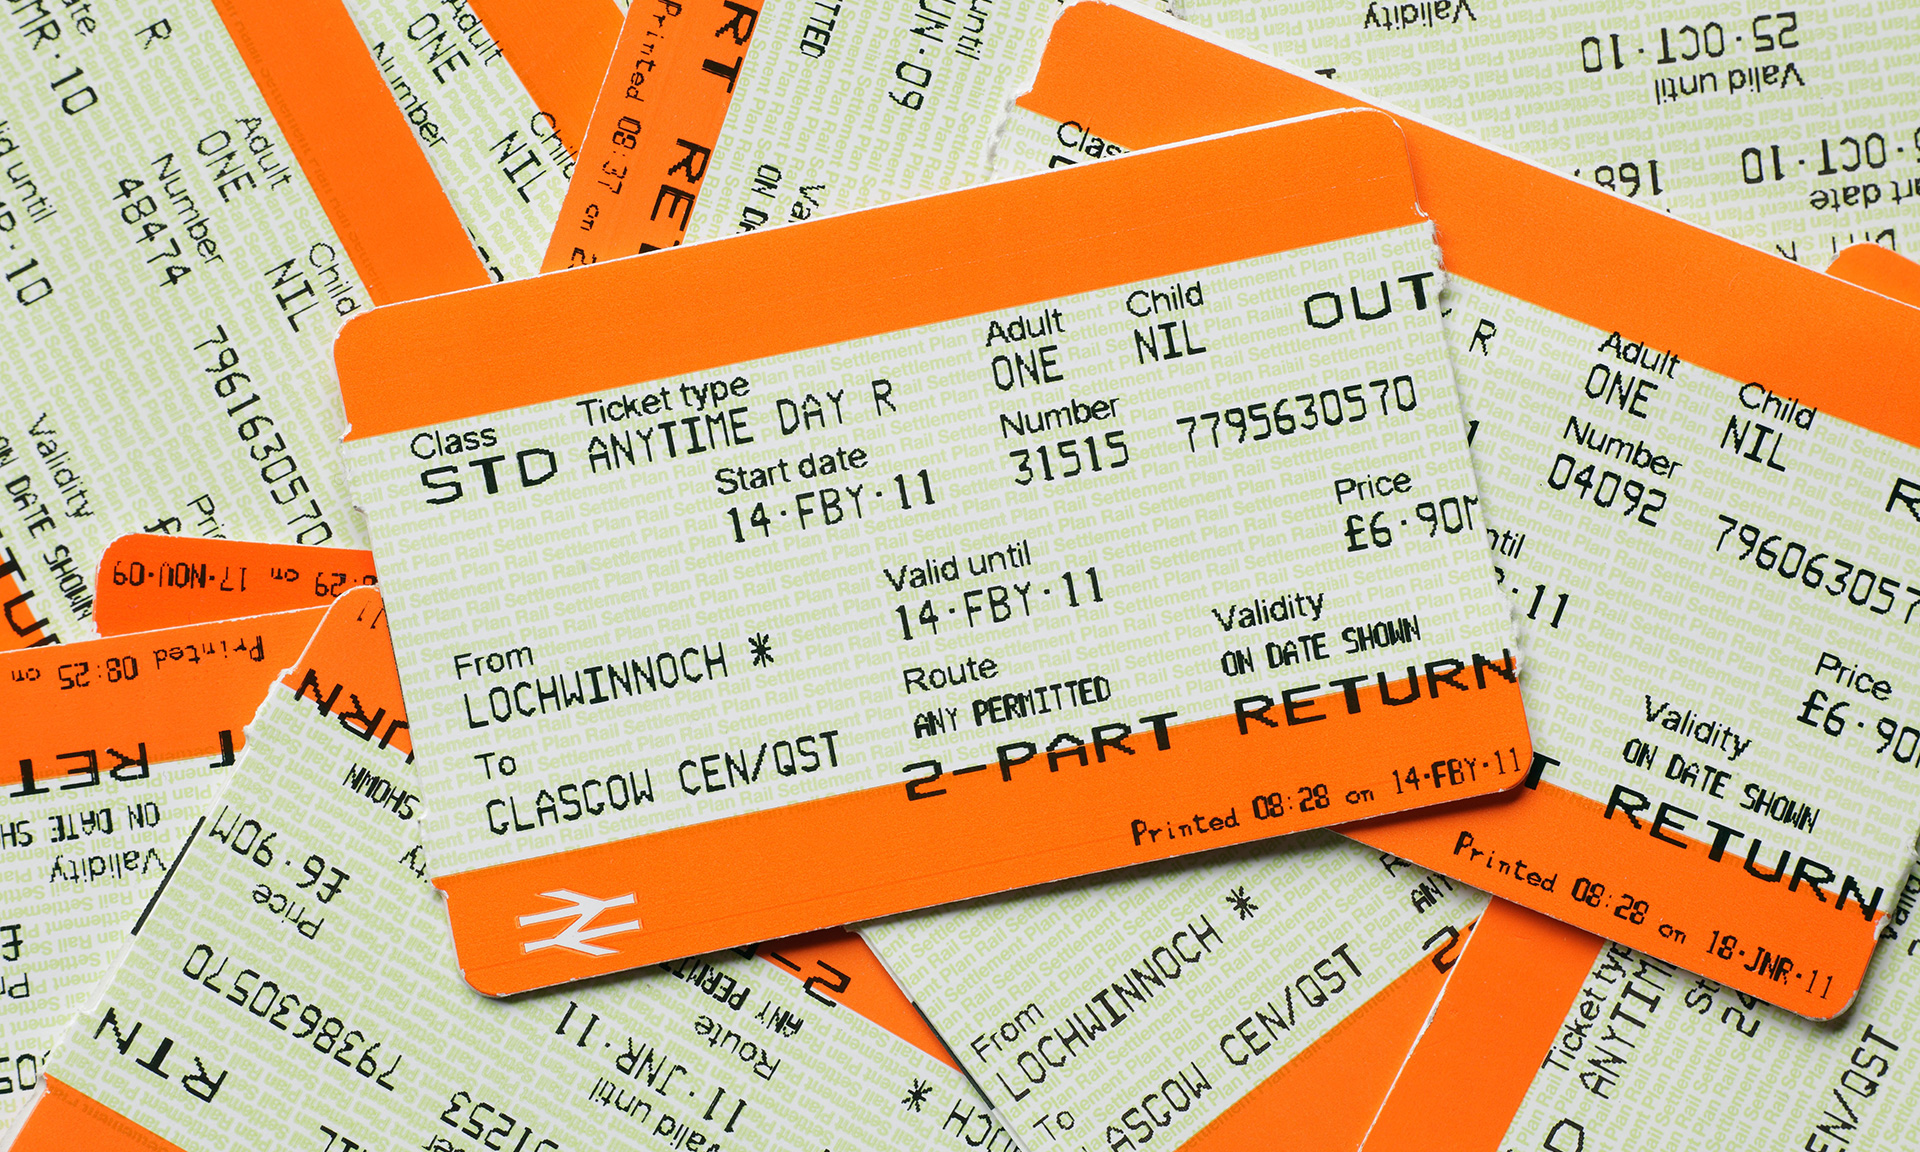 How much can flexible train tickets save commuters? – Which? News